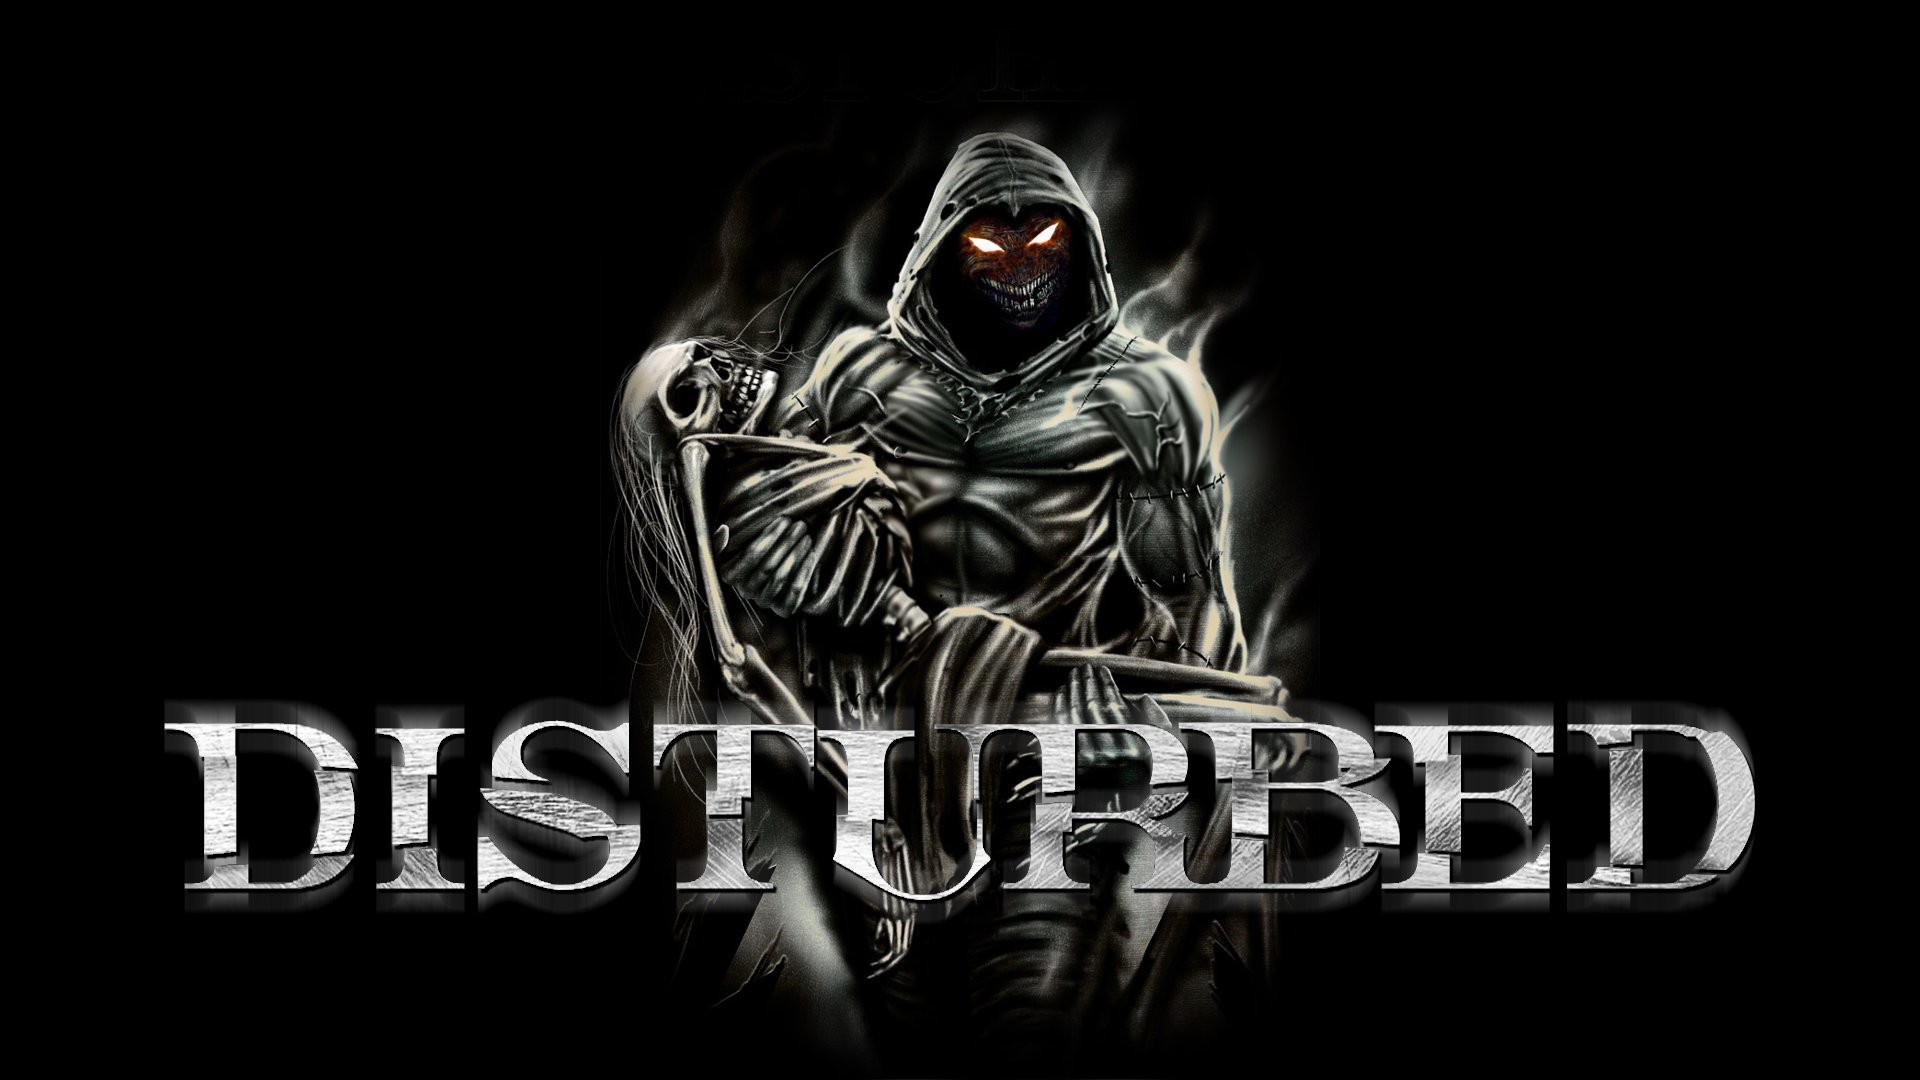 … disturbed wallpapers pictures images …